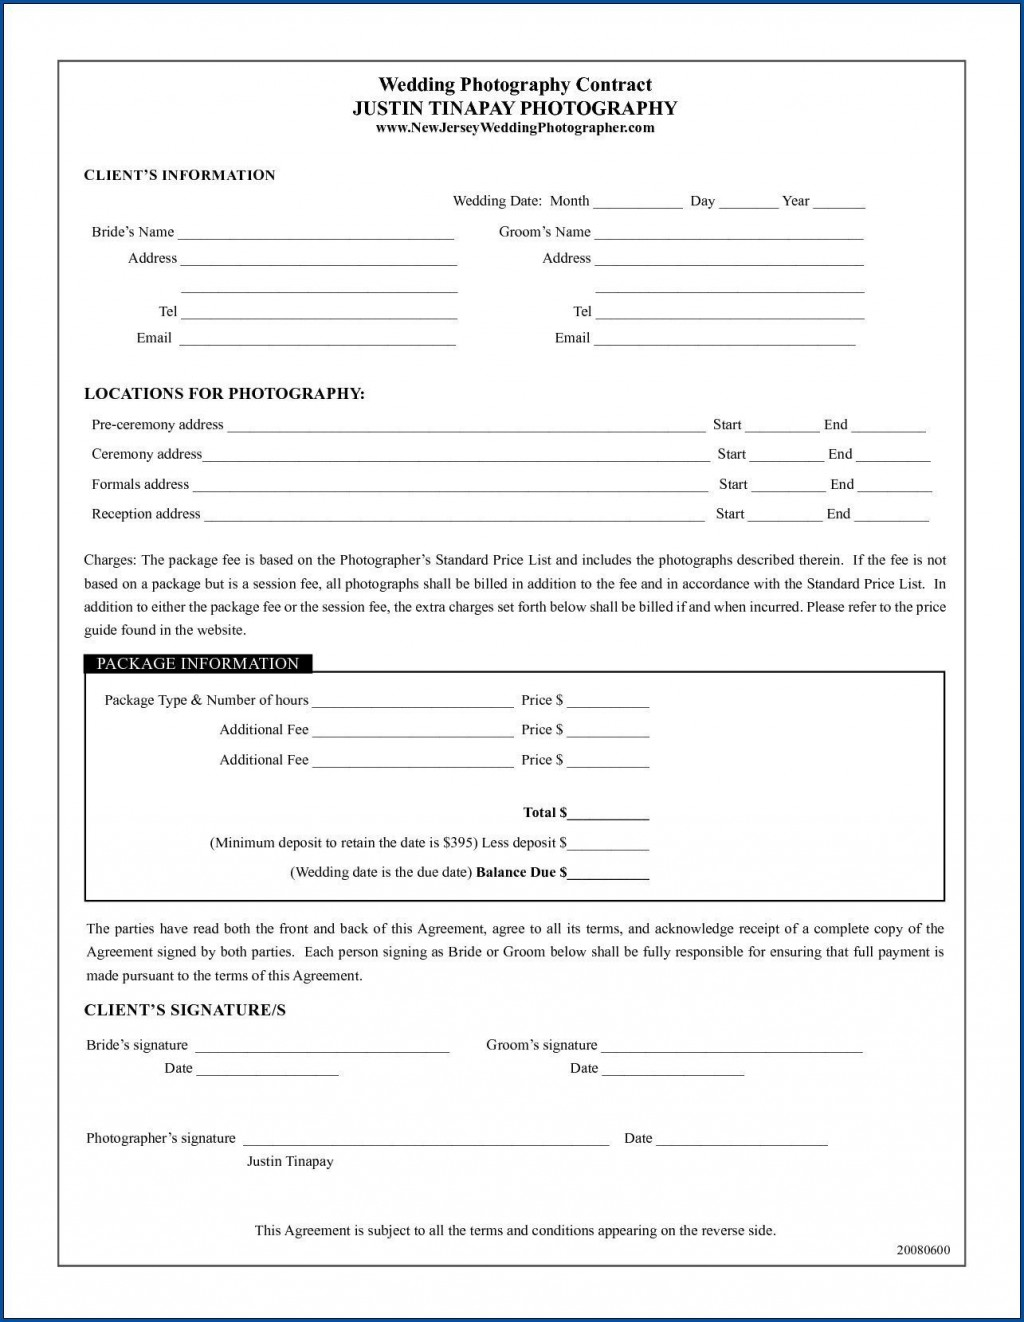 004 Outstanding Wedding Photography Contract Template Canada Example Large